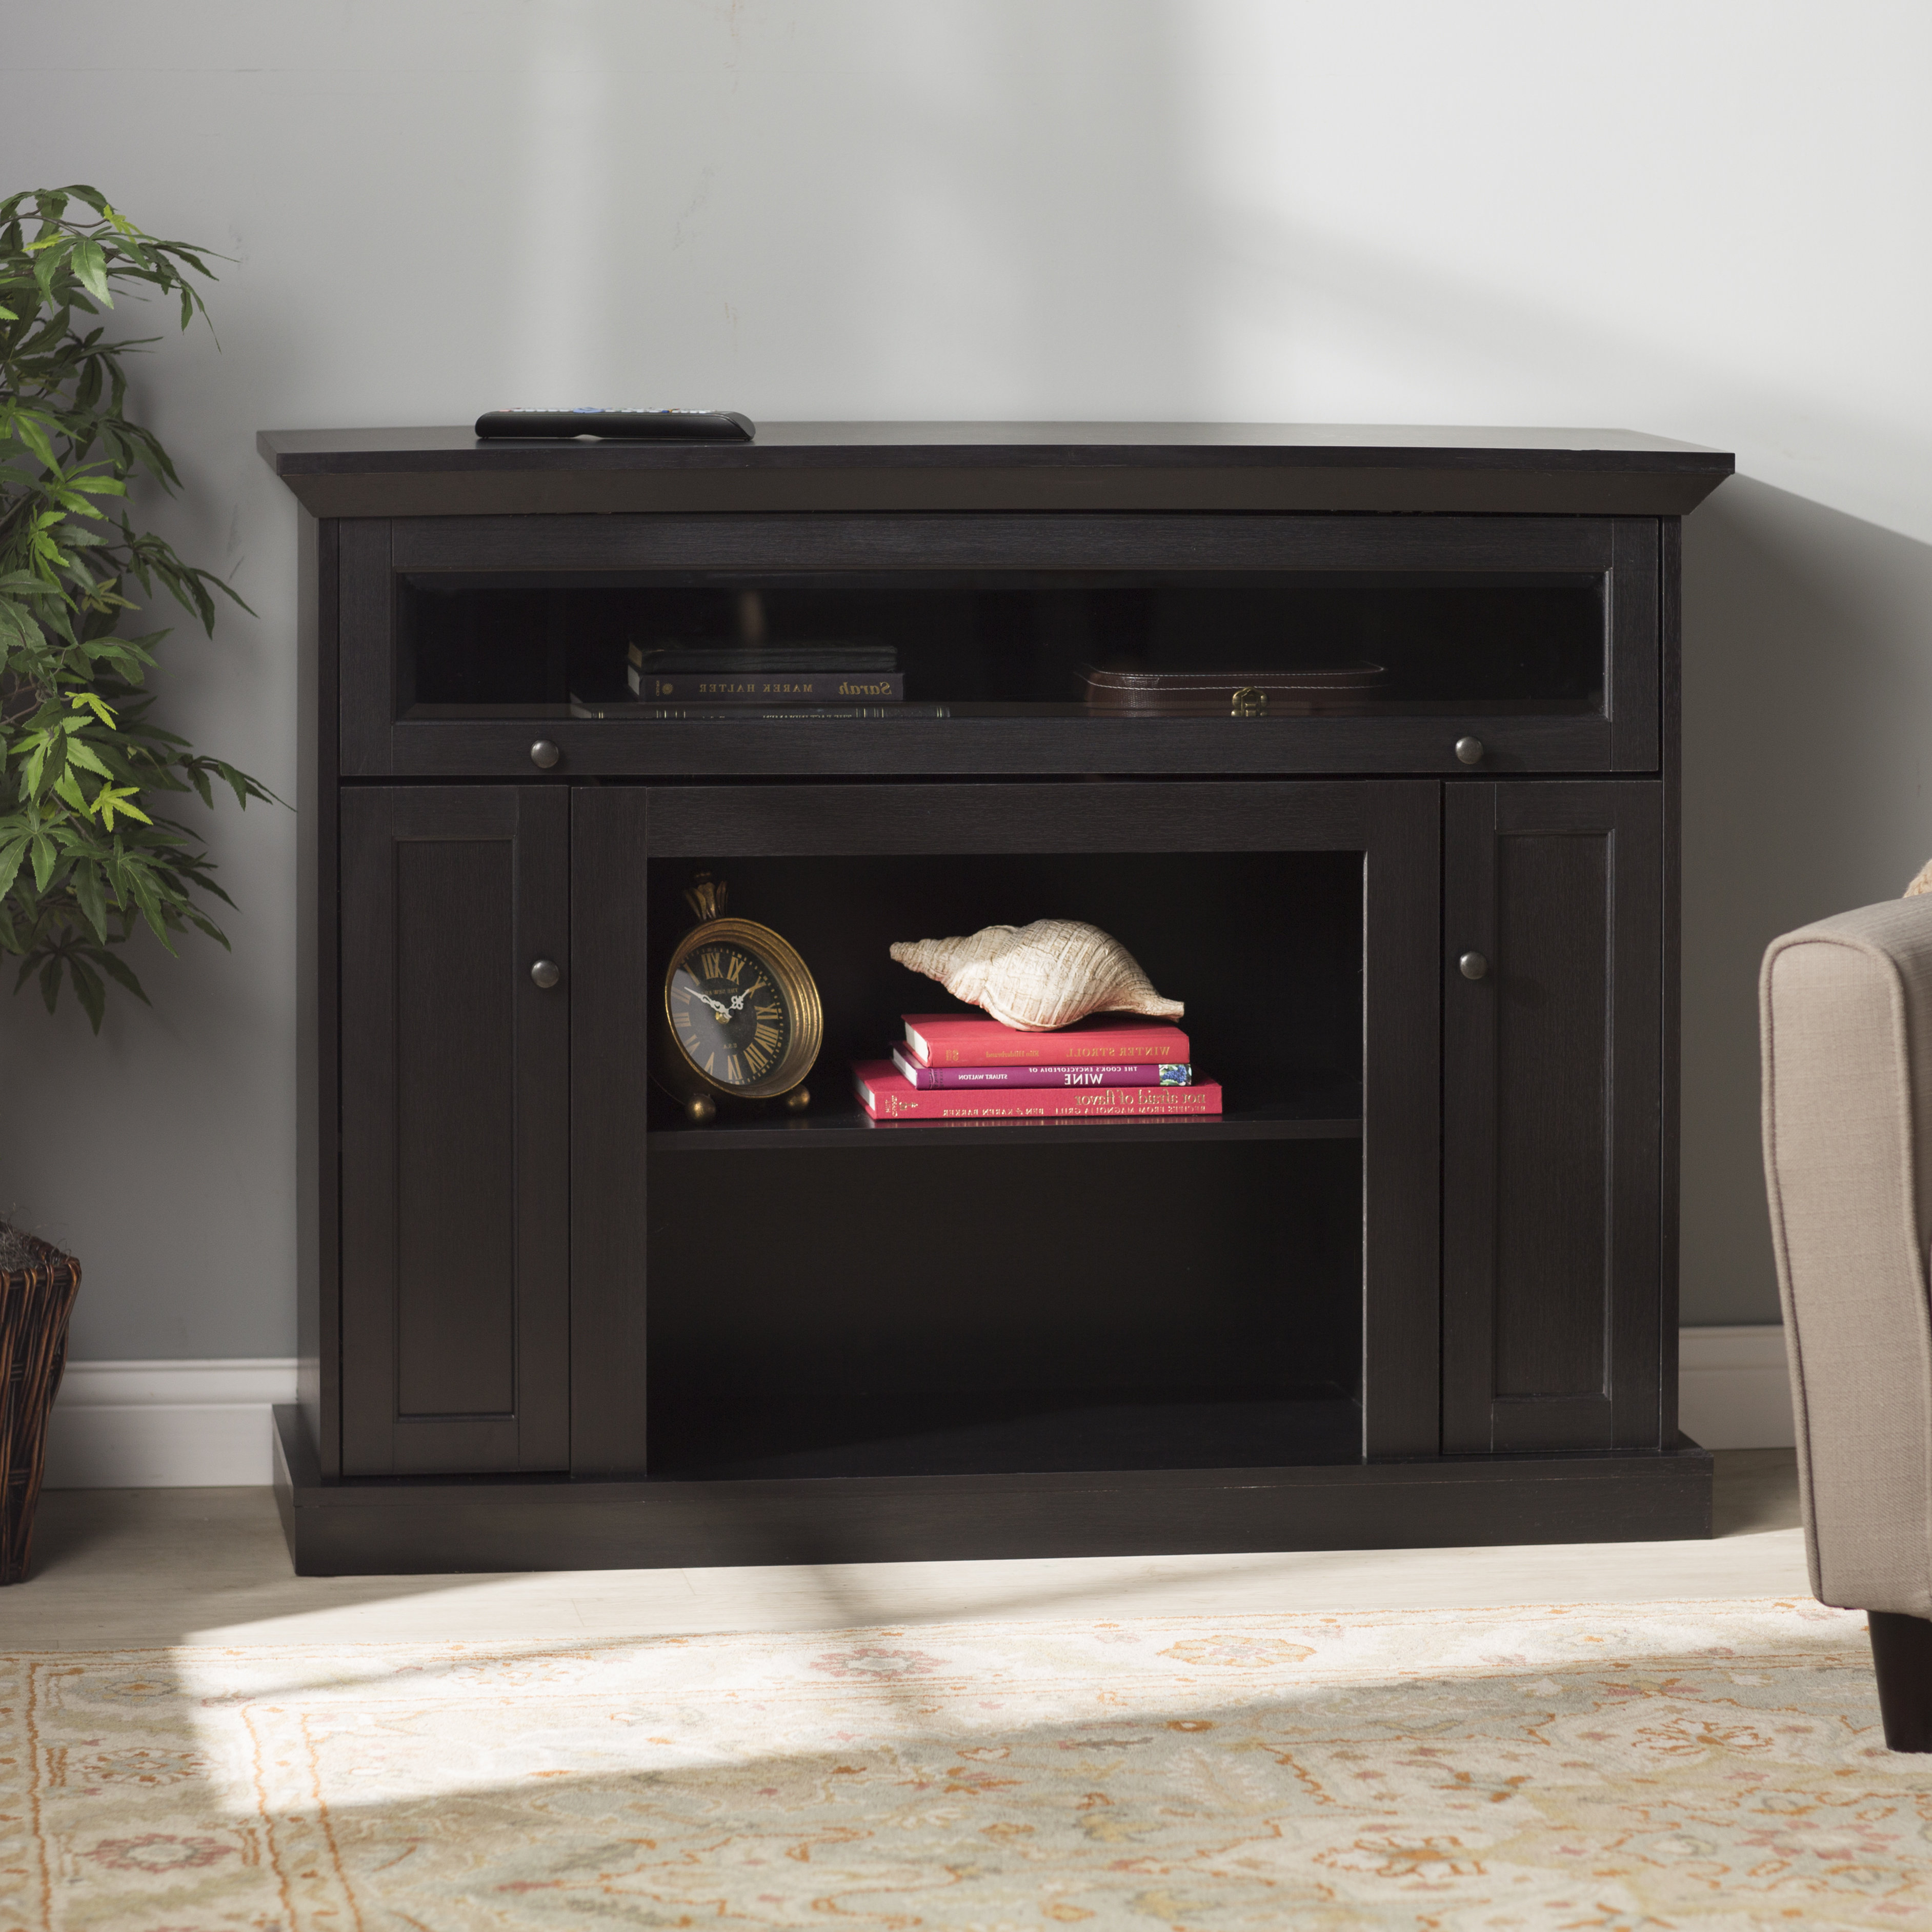 Rustic Tv Stands & Entertainment Centers You'll Love | Wayfair Throughout Walton Grey 72 Inch Tv Stands (View 19 of 20)